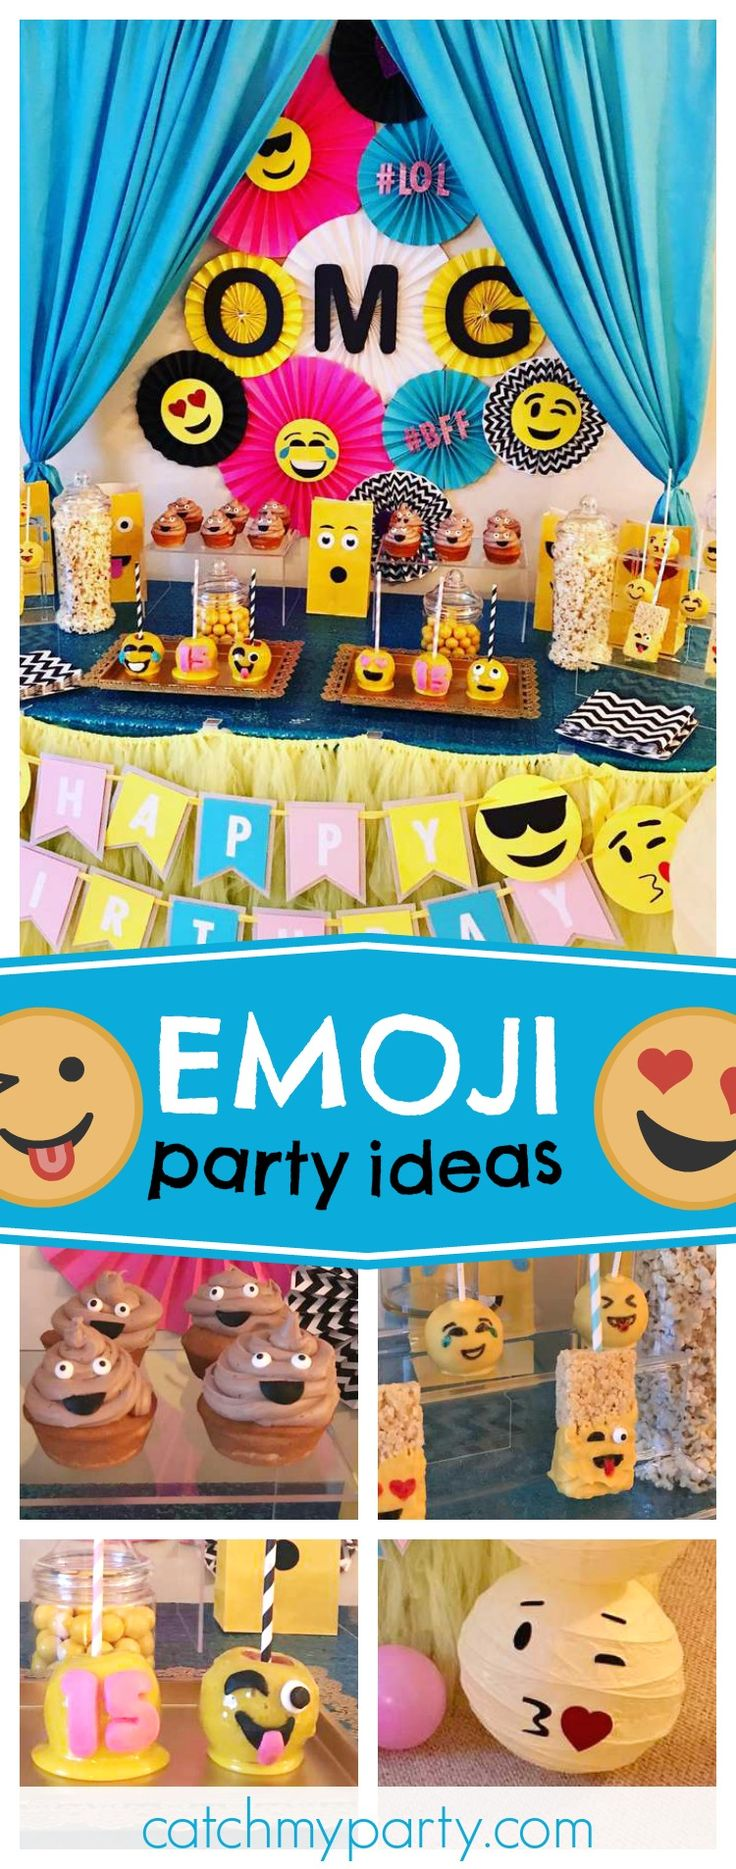 Check out this fun Emoji birthday party! The emoji candy apples are so cool!! See more party ideas and share yours at CatchMyParty.com#emojis #instagram #whatsapp